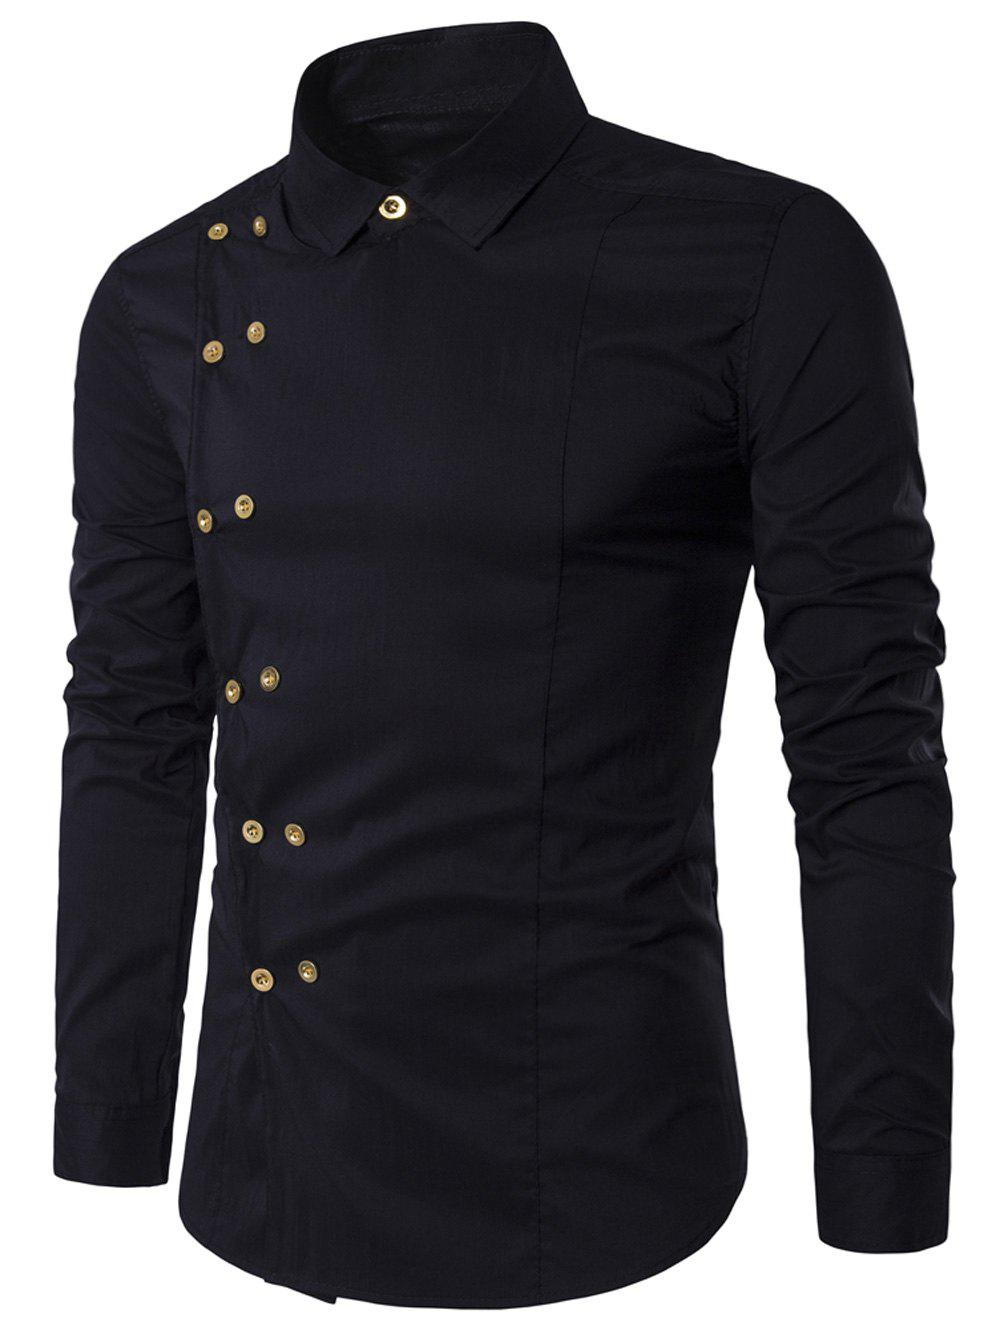 Double Breasted Turndown Collar Long Sleeve ShirtMEN<br><br>Size: L; Color: BLACK; Shirts Type: Casual Shirts; Material: Cotton,Polyester; Sleeve Length: Full; Collar: Turndown Collar; Pattern Type: Solid; Weight: 0.1900kg; Package Contents: 1 x Shirt;